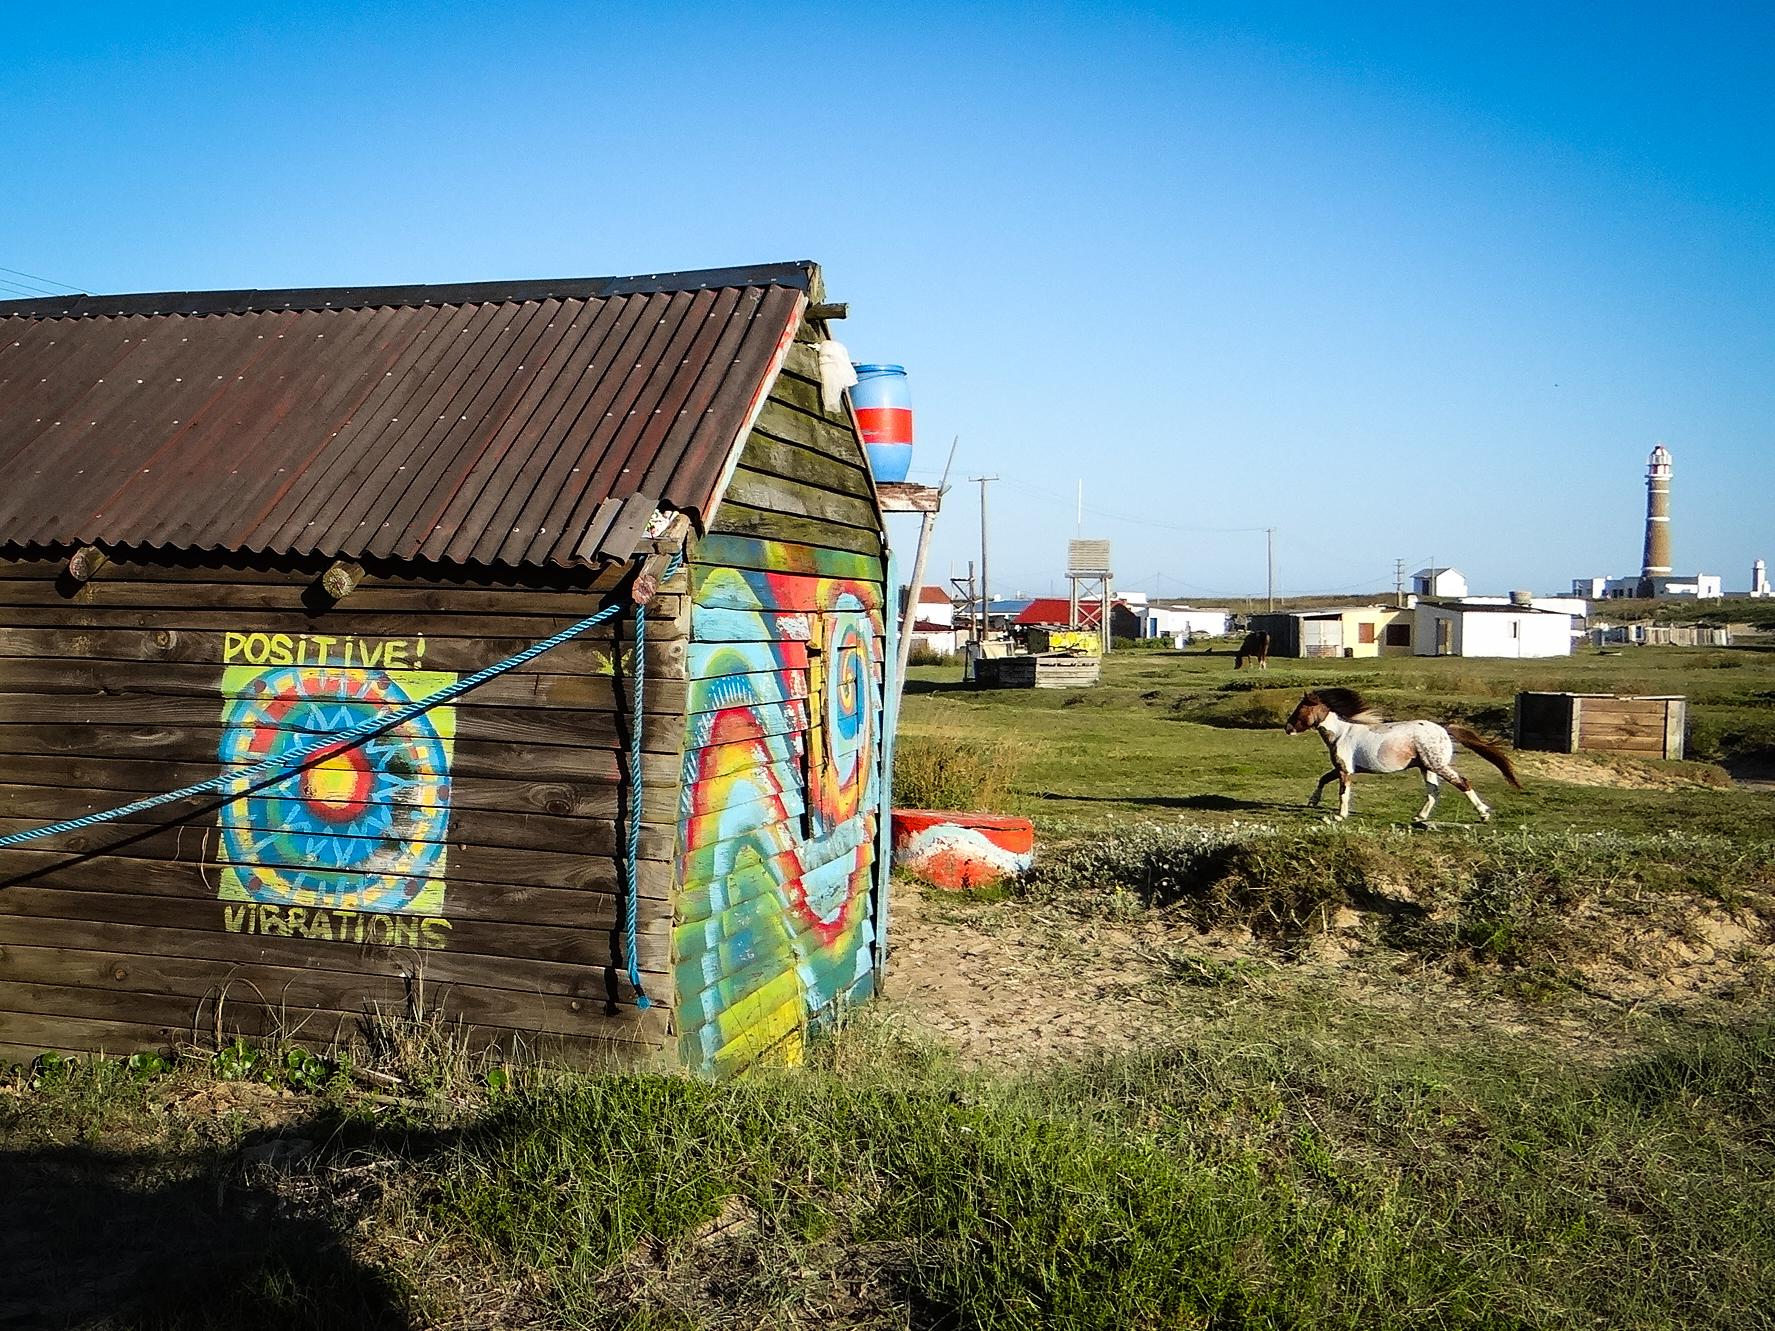 Holiday in a squatters' commune: Uruguay's incredible secret seaside resort